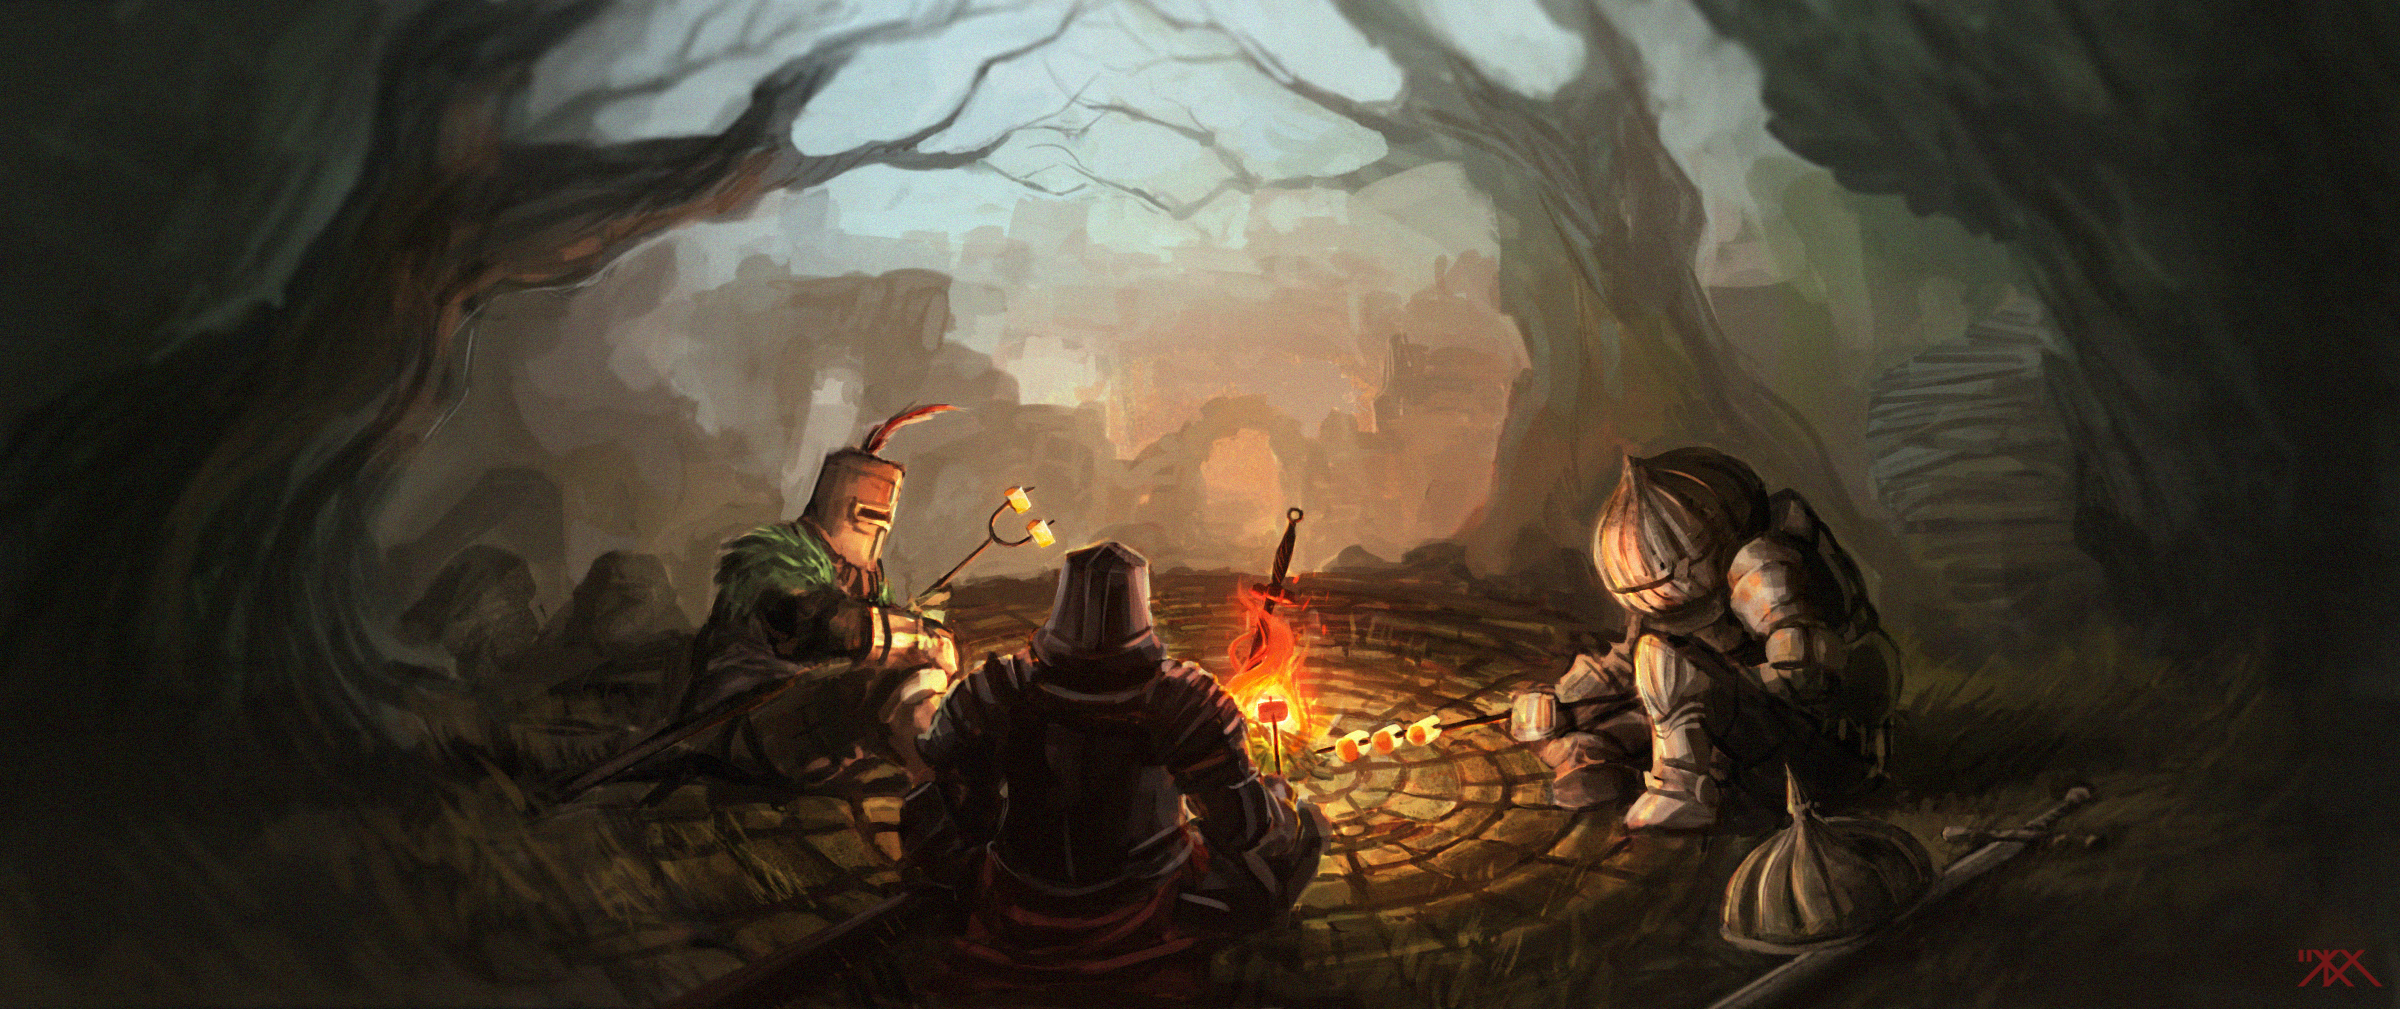 Around the bonfire wallpaper and background image - Dark souls hd wallpaper ...